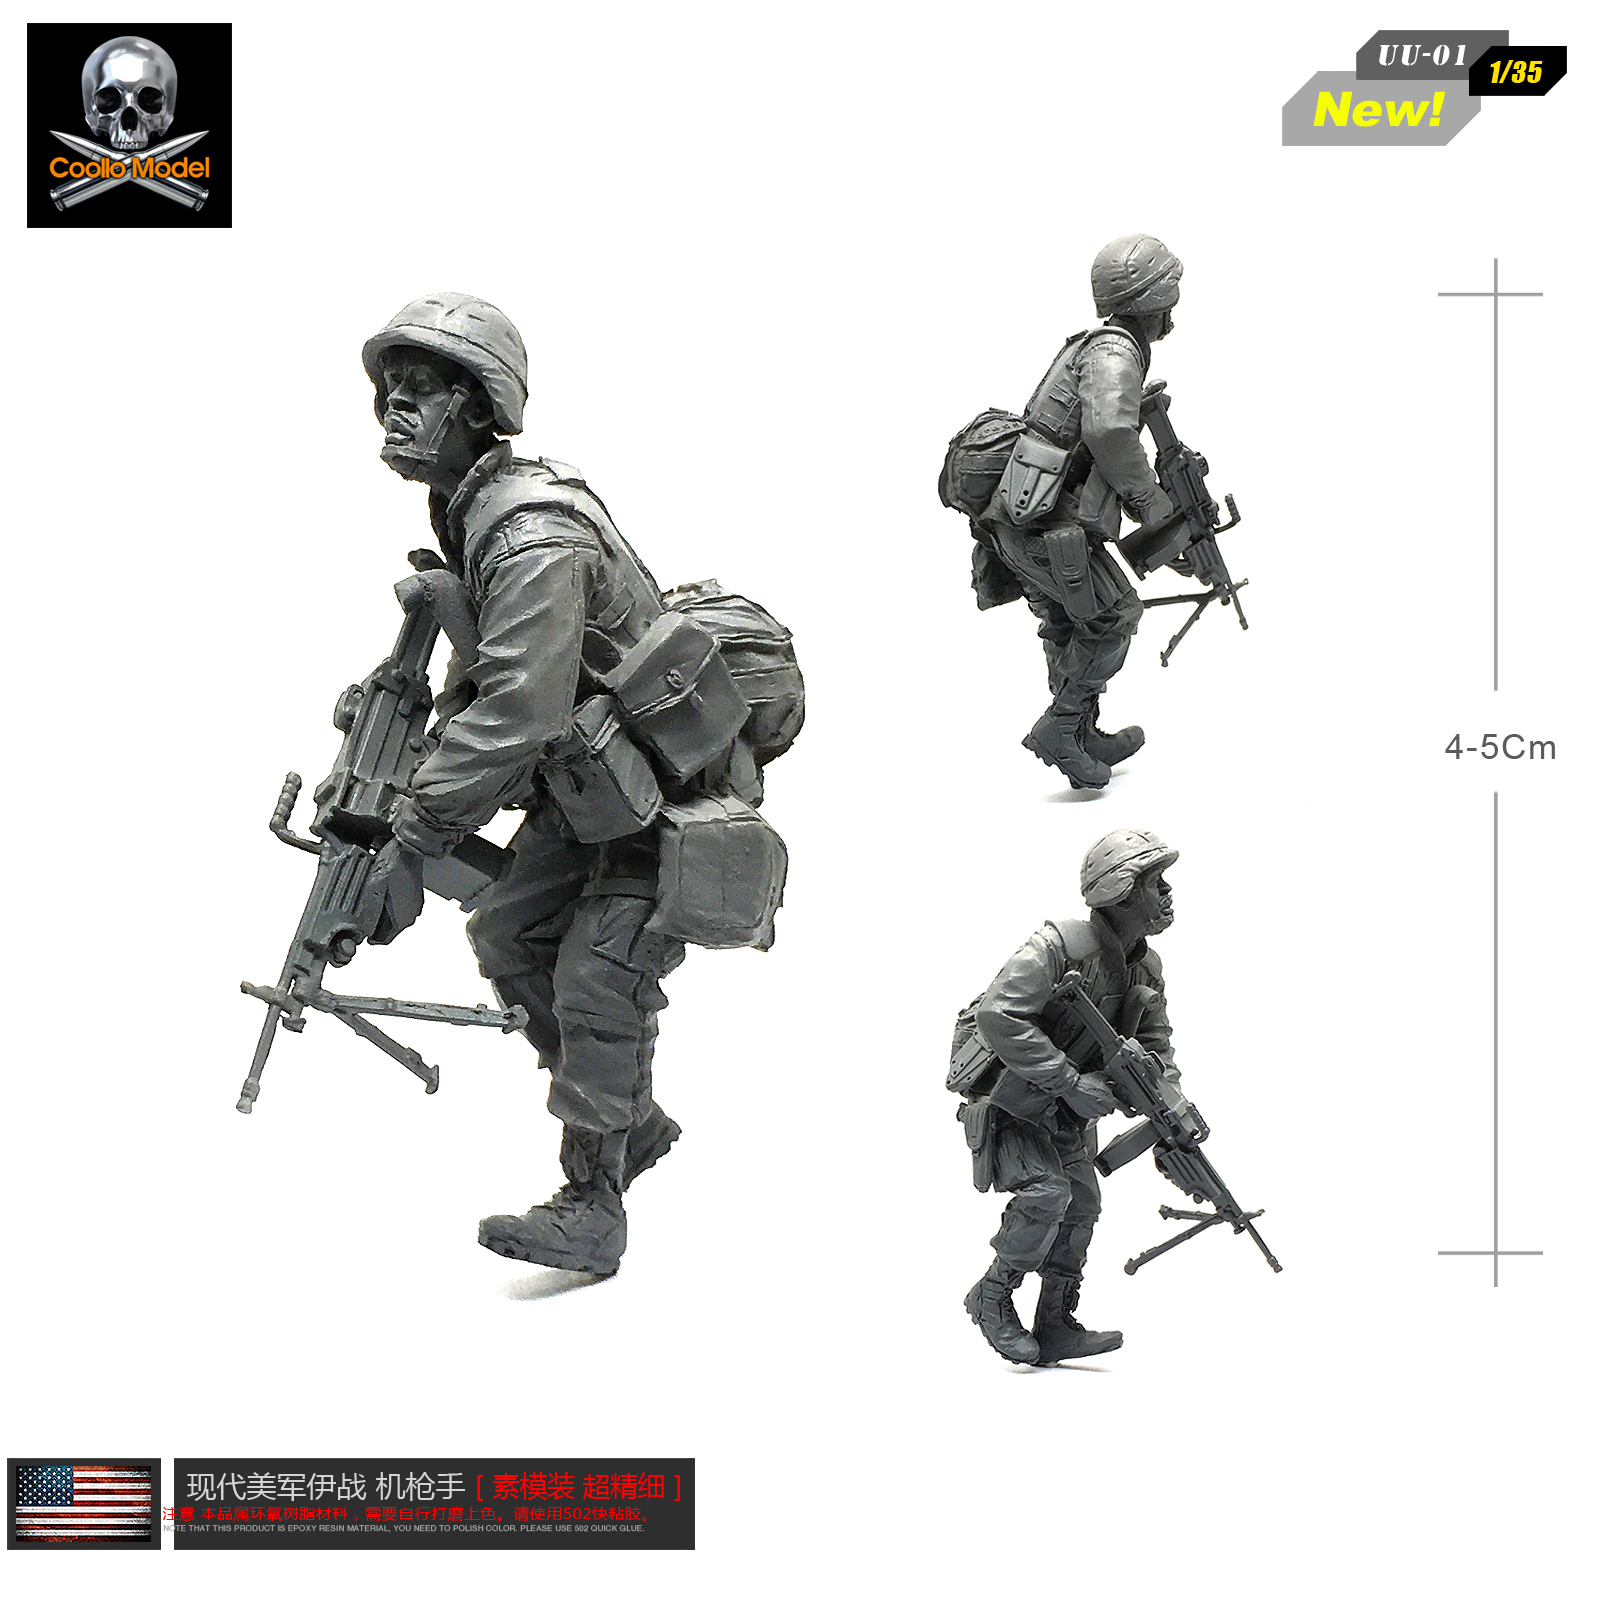 1/35 Figure Kits Resin Model U.s. Marine Corps   Resin Gunners  Self-assembled UU-01